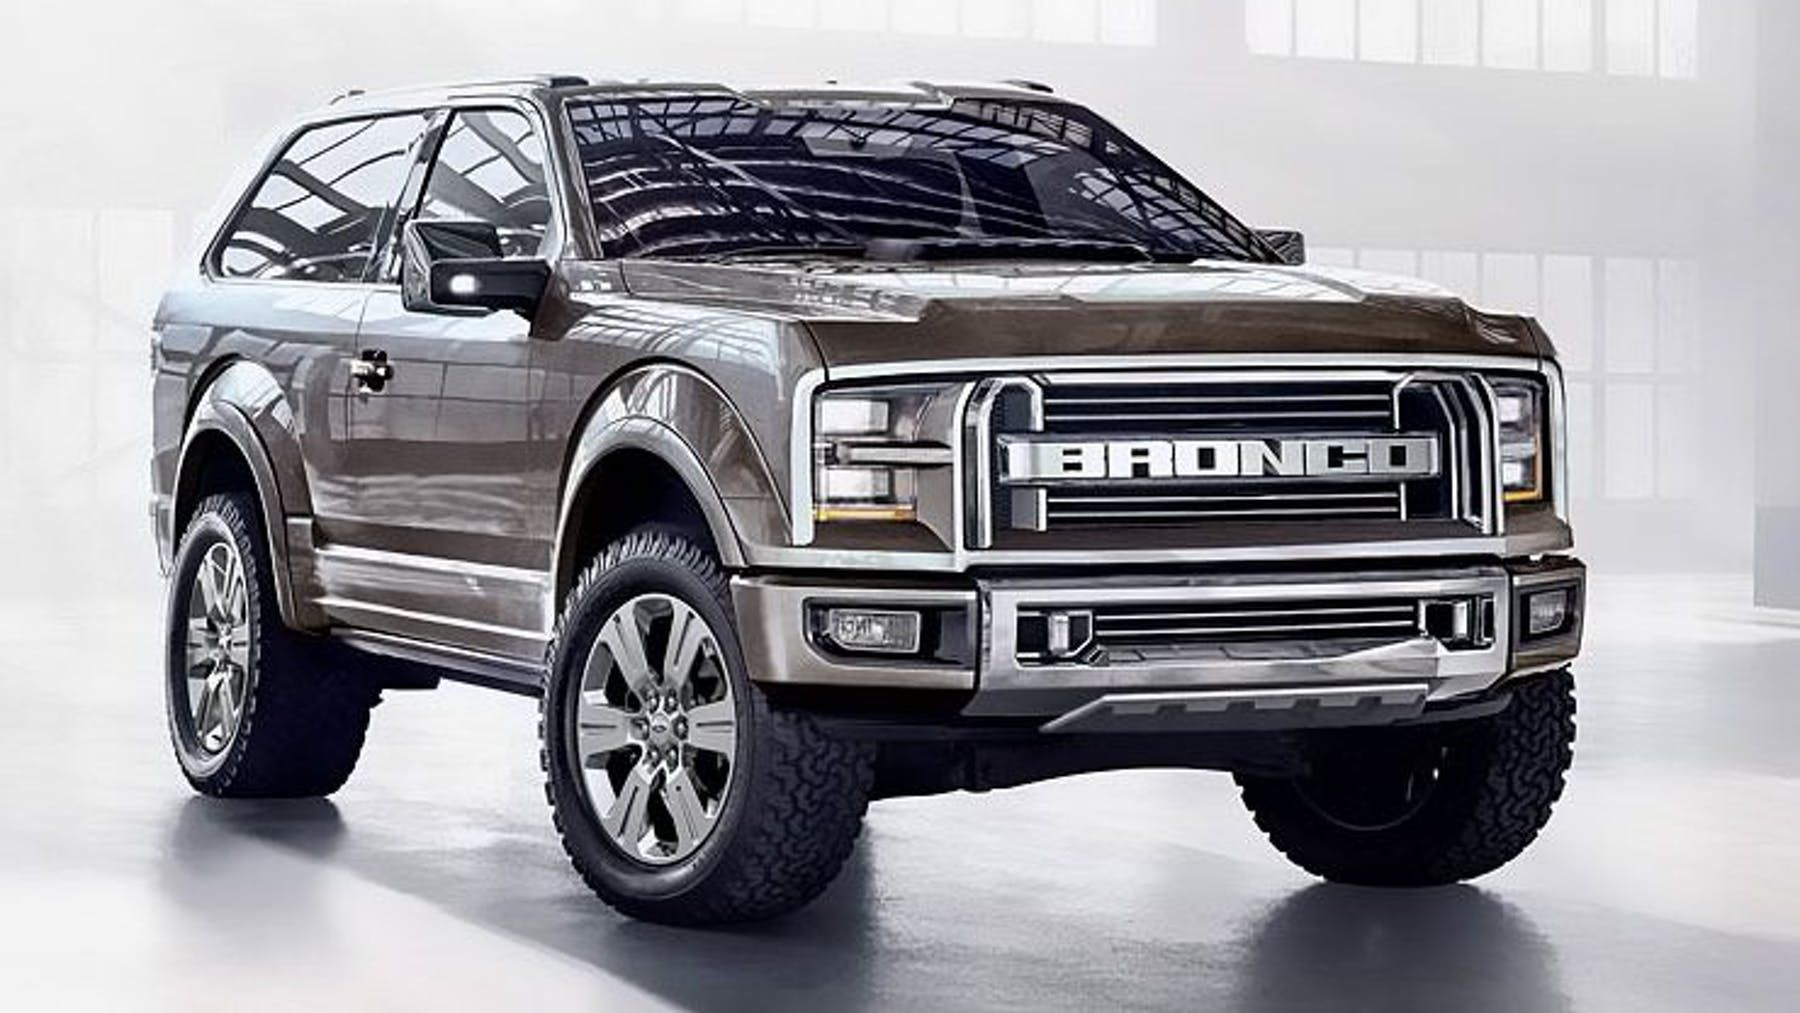 Ford Bronco 2020 Price 2020 ford bronco estimated price